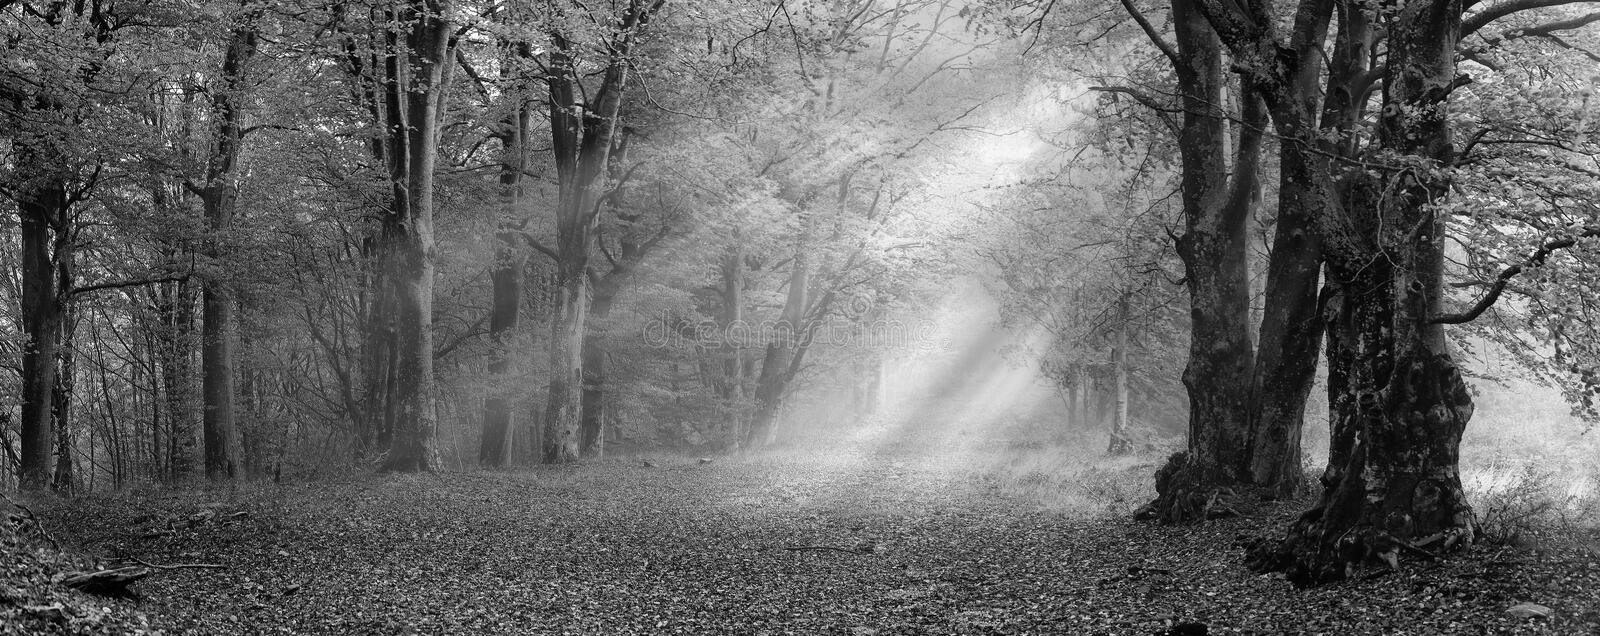 Misty autumn forest. Misty deciduous forest in autumn with the sunbeams making the way through the trees royalty free stock image